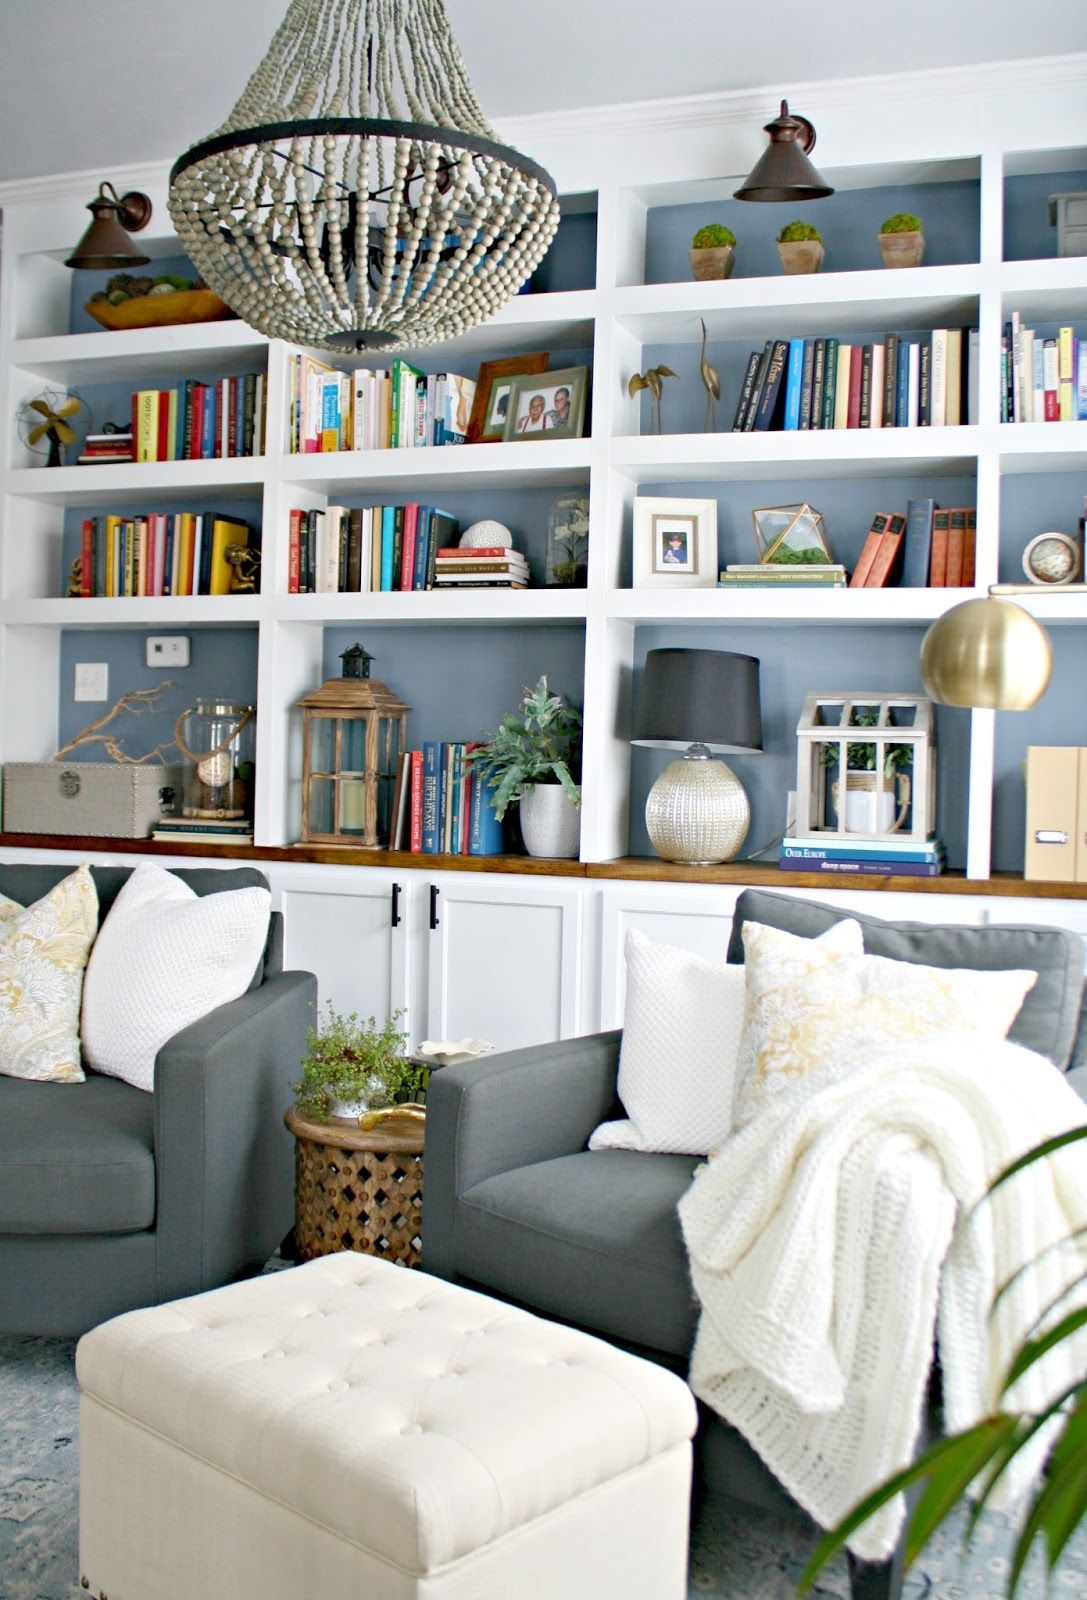 Premade Built In Bookcases Diy Built Ins Bookcase With Base Cabinets From The Big Box Store